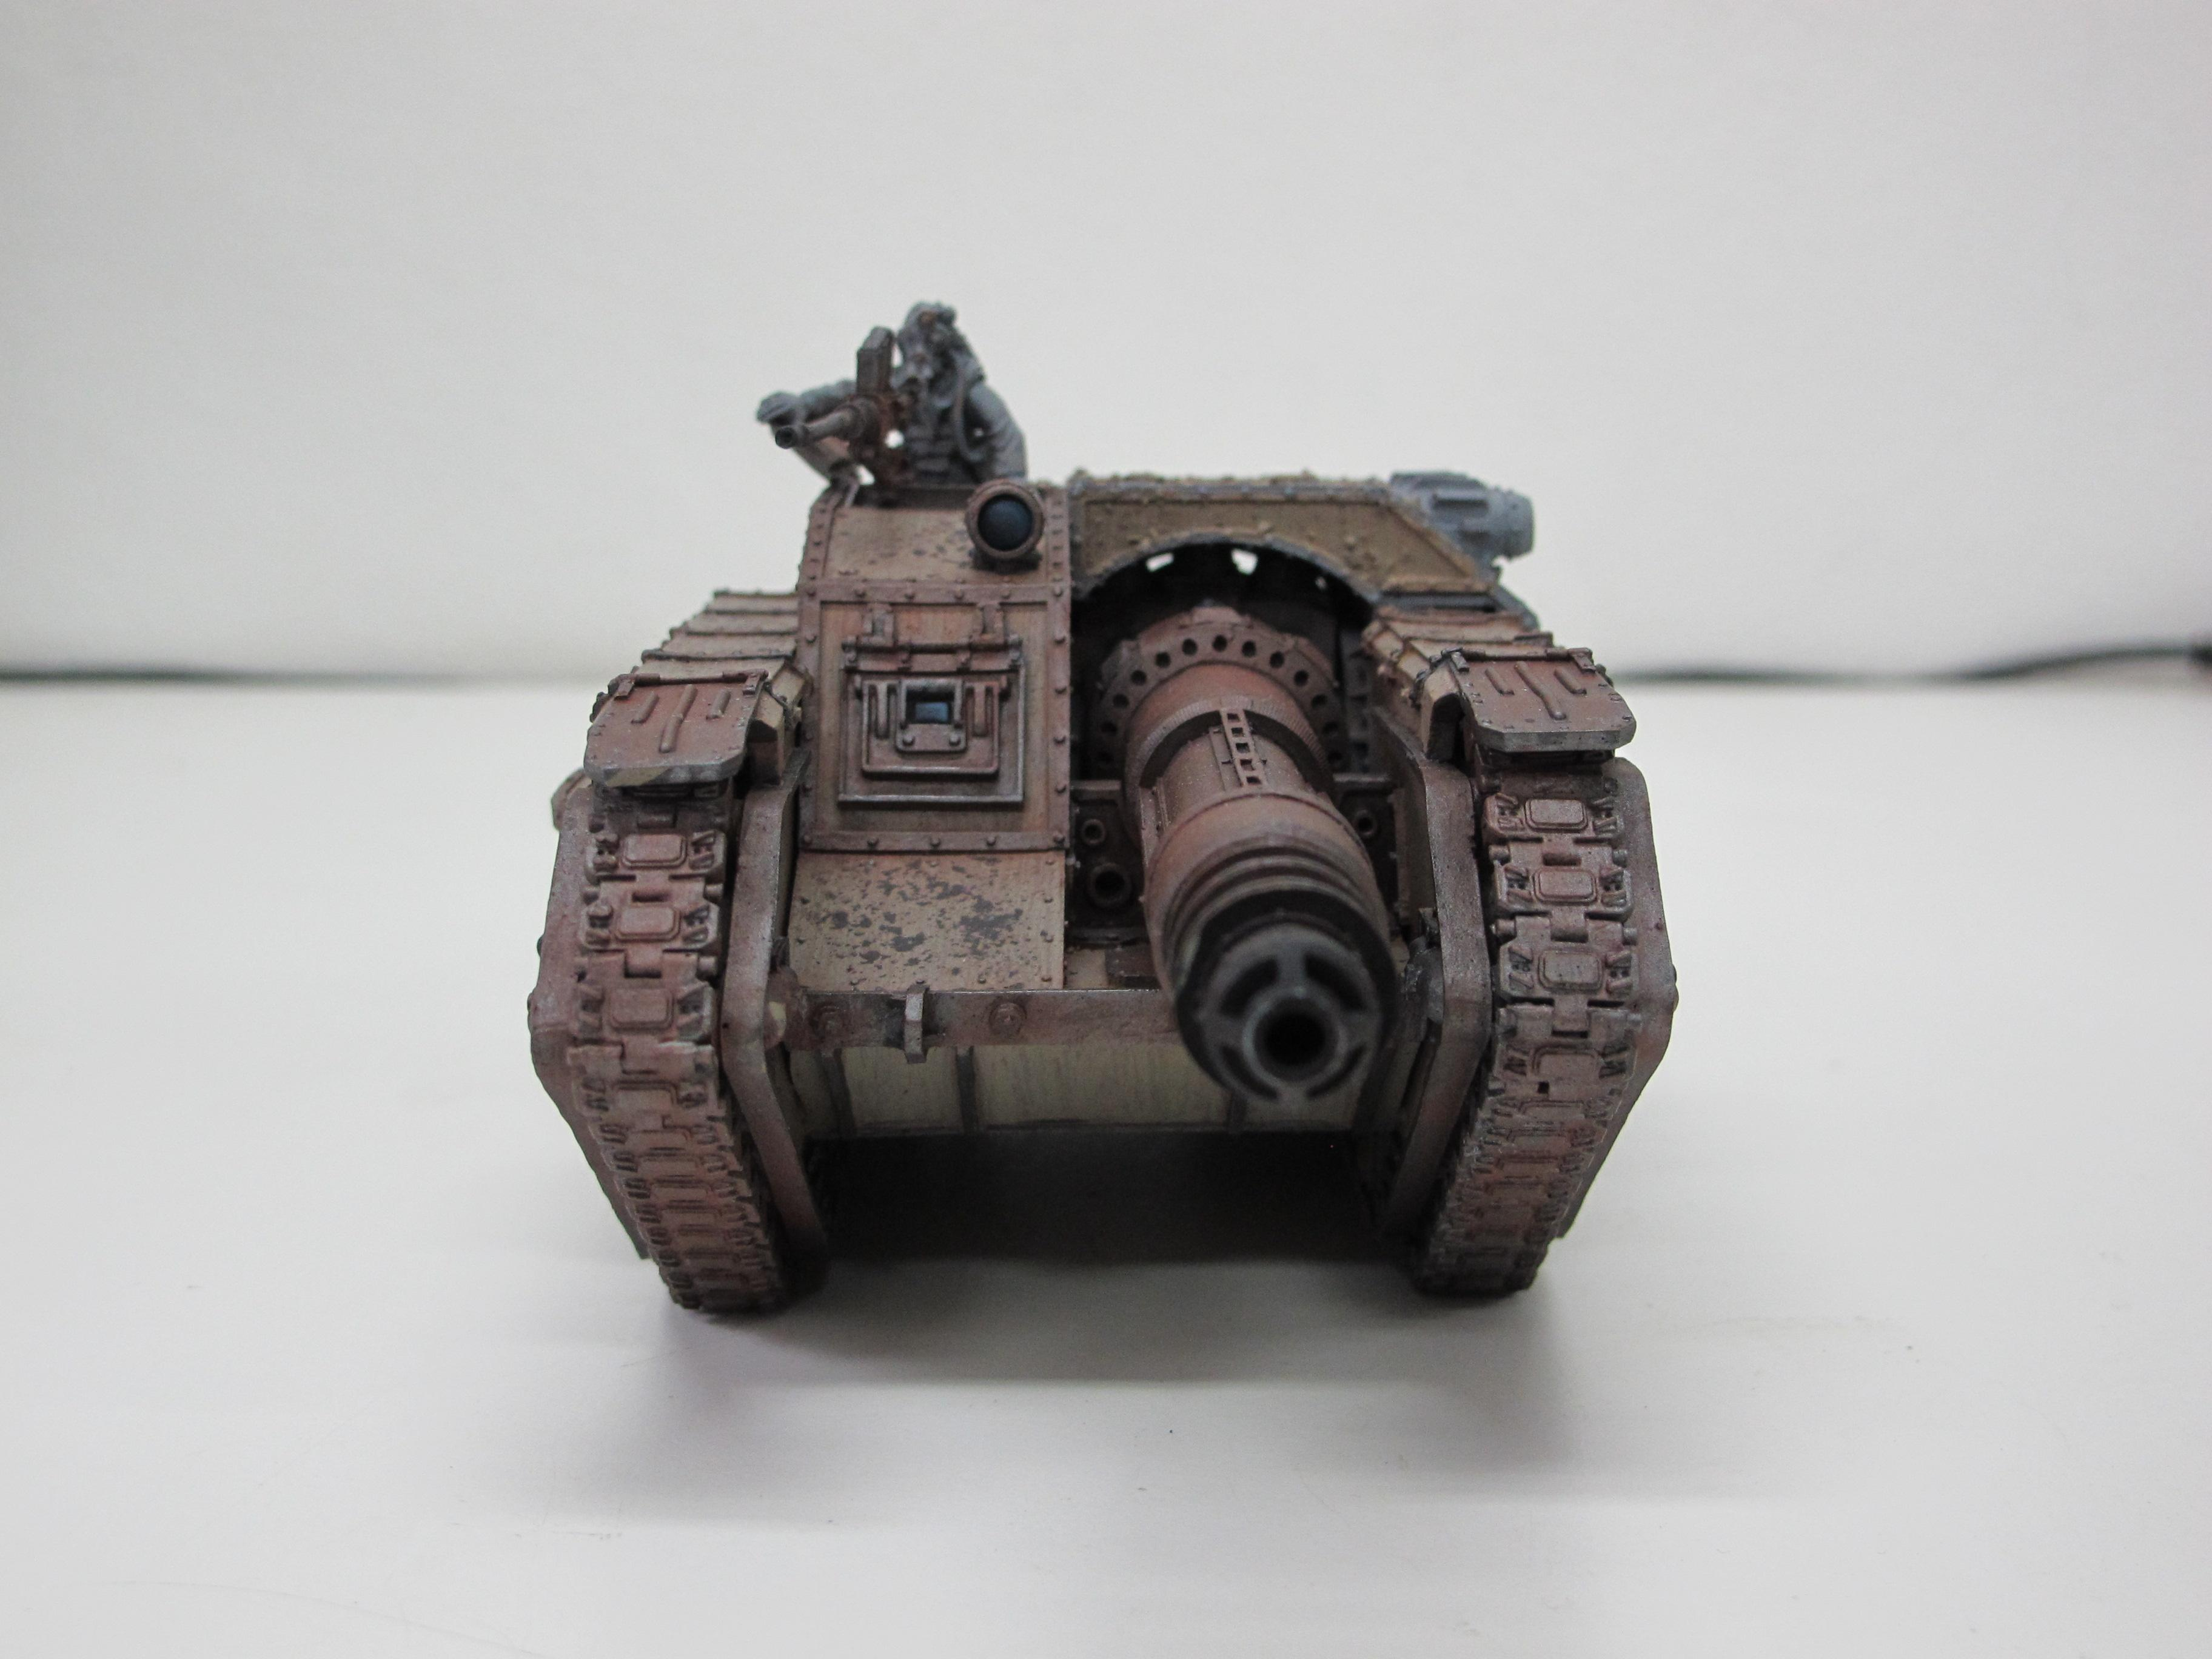 Chaos, Chaos Space Marines, Death Guard, Forge World, Heretic, Lords Of Decay, Nurgle, Plague Marines, Renegade, Rust, Super-heavy, Valdor, Valdor Tank Hunter, Vraks